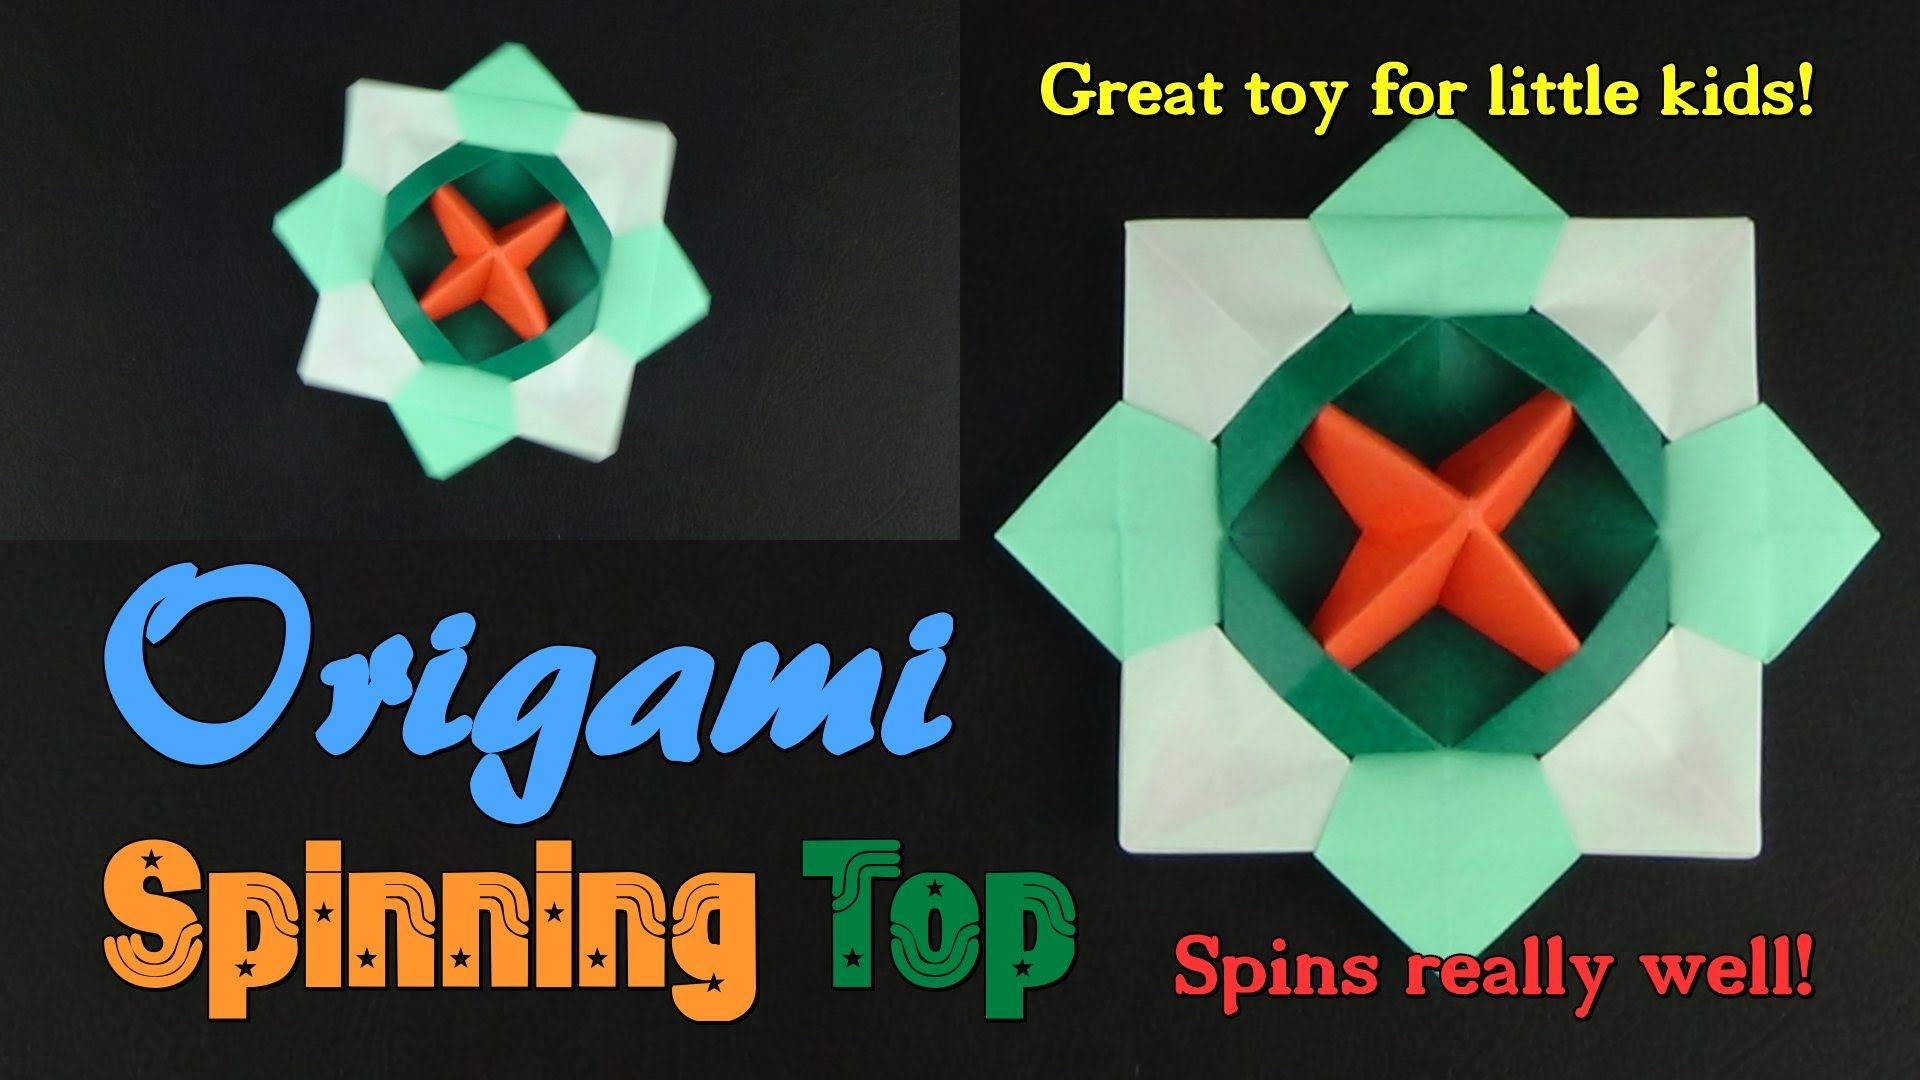 How to Make an Origami Spinning Top! - Origami Toys ... - photo#25